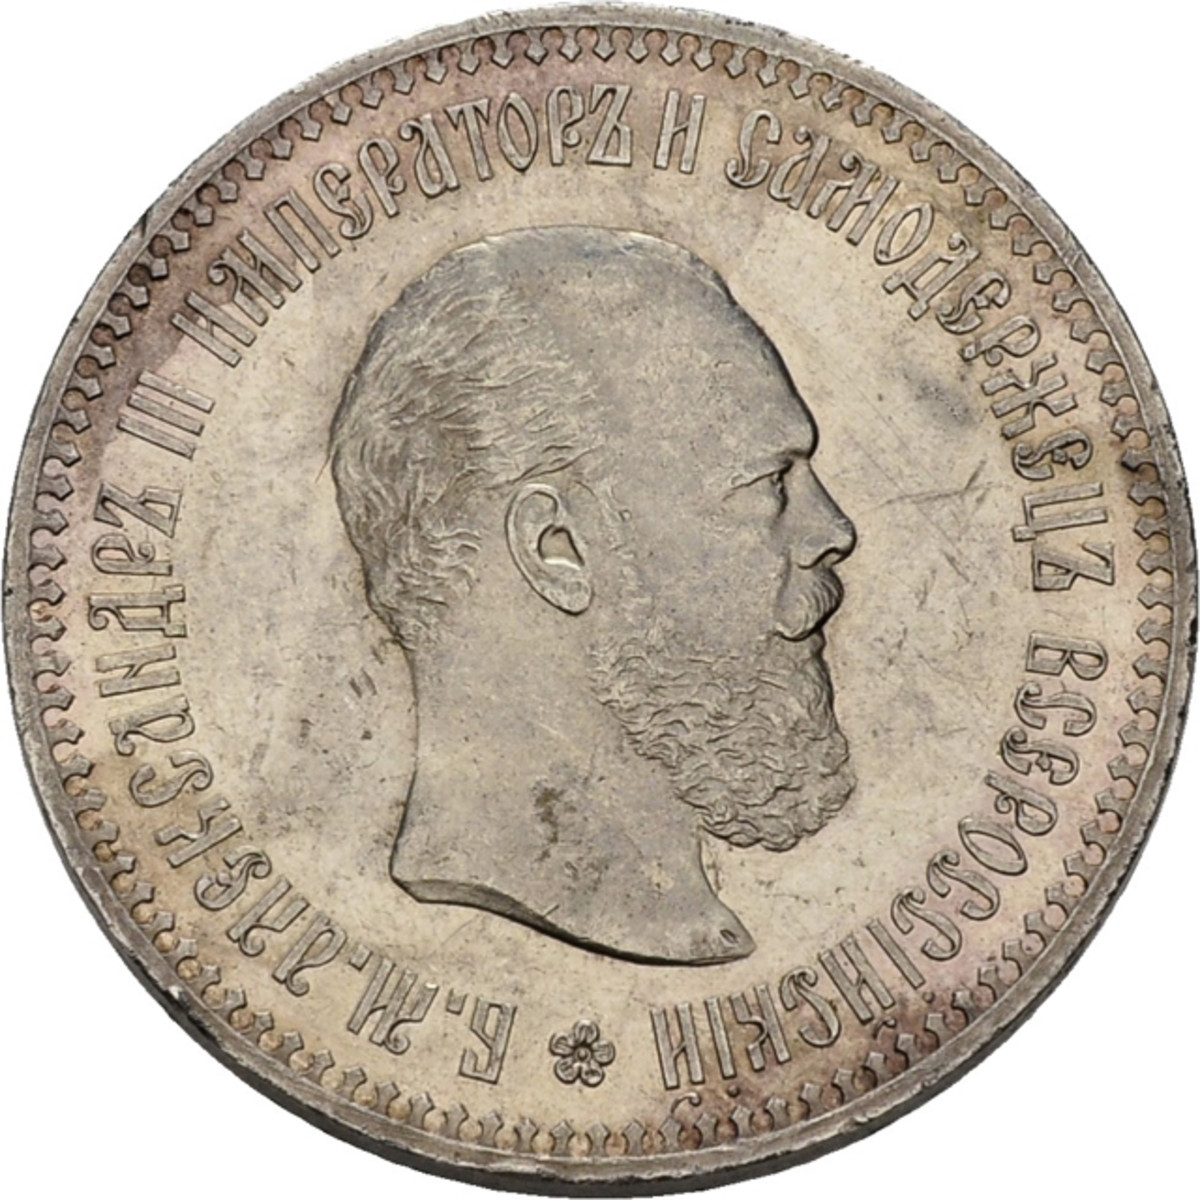 An 1886 pattern rouble of Alexander III by L. Shteinmann is among the coins featured in the upcoming auction.